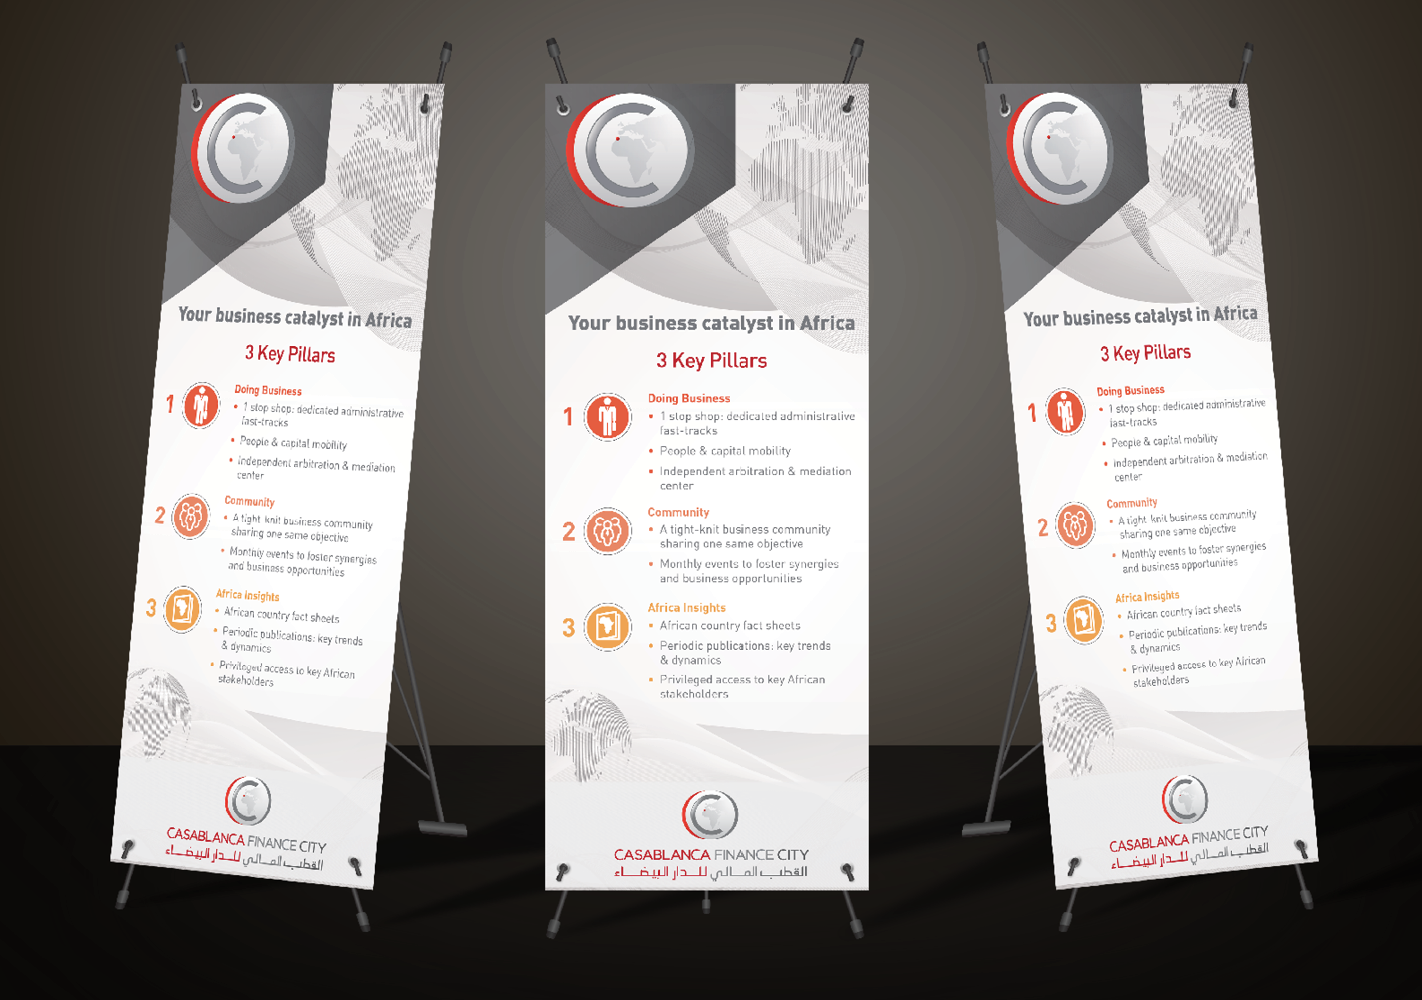 #X-Banner : Adaptation, exécution et impression #XBanner : Adaptation, execution and printing